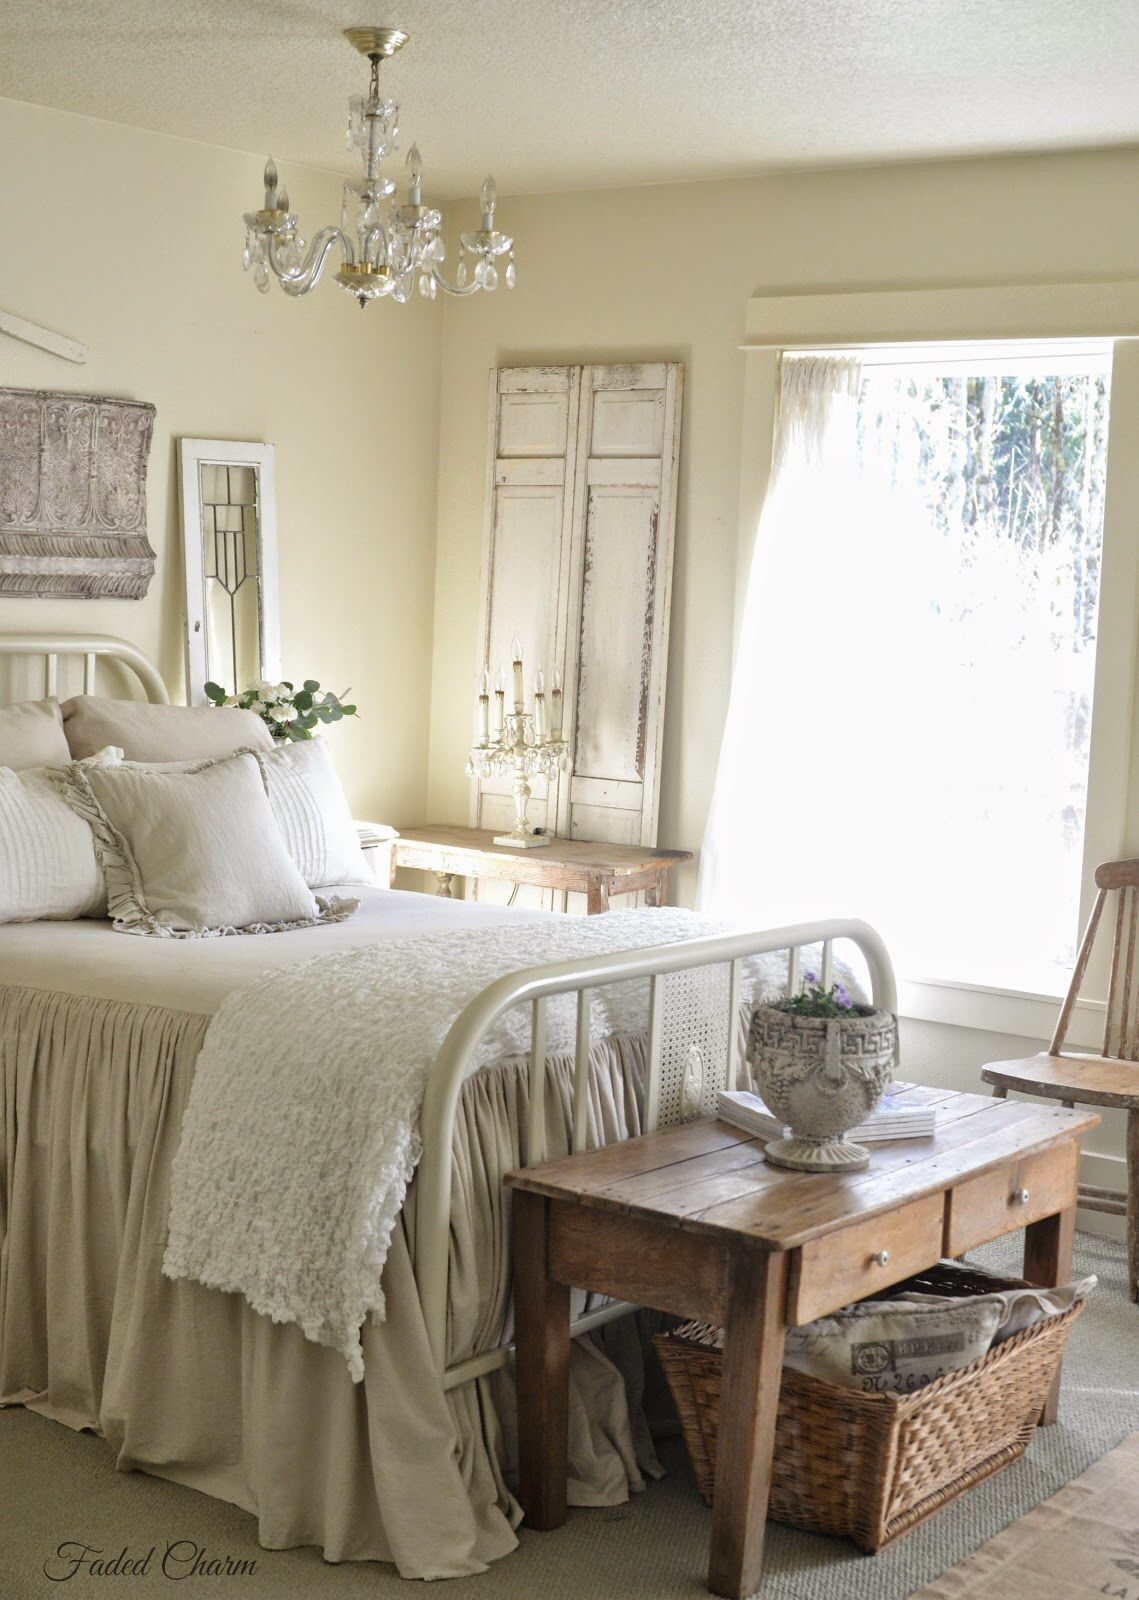 Lovely bedroom from Faded Charm | When I Have No Pets... | Pinterest ...